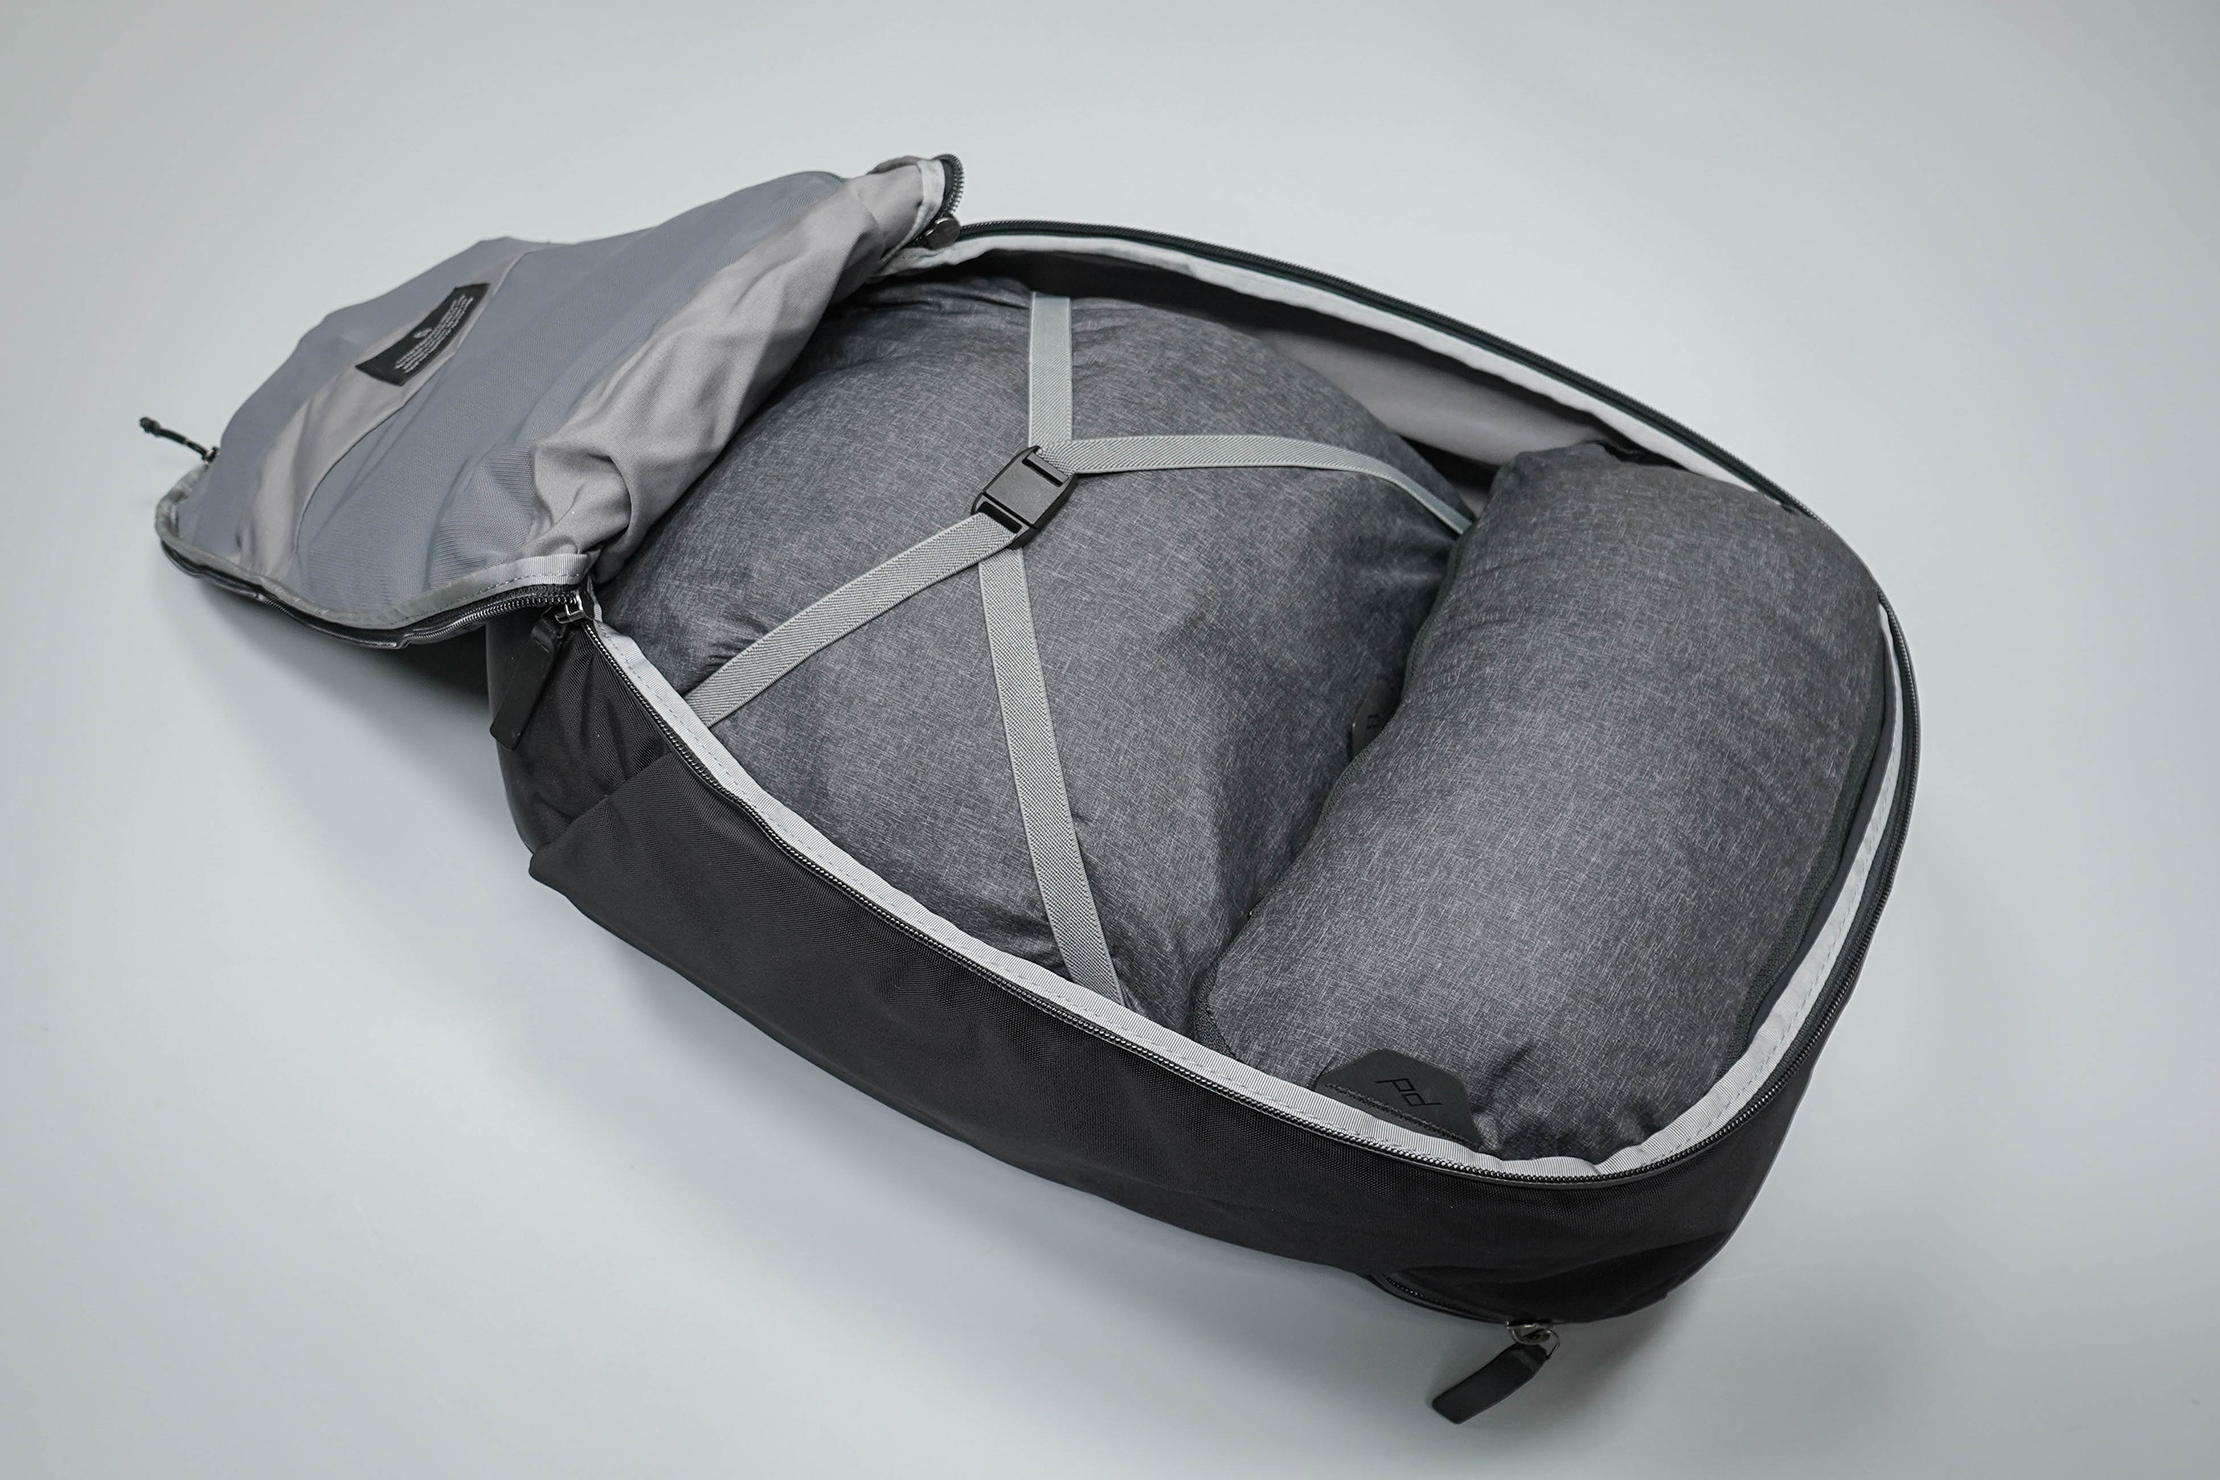 Bellroy Transit Backpack Main Compartment With Packing Cubes